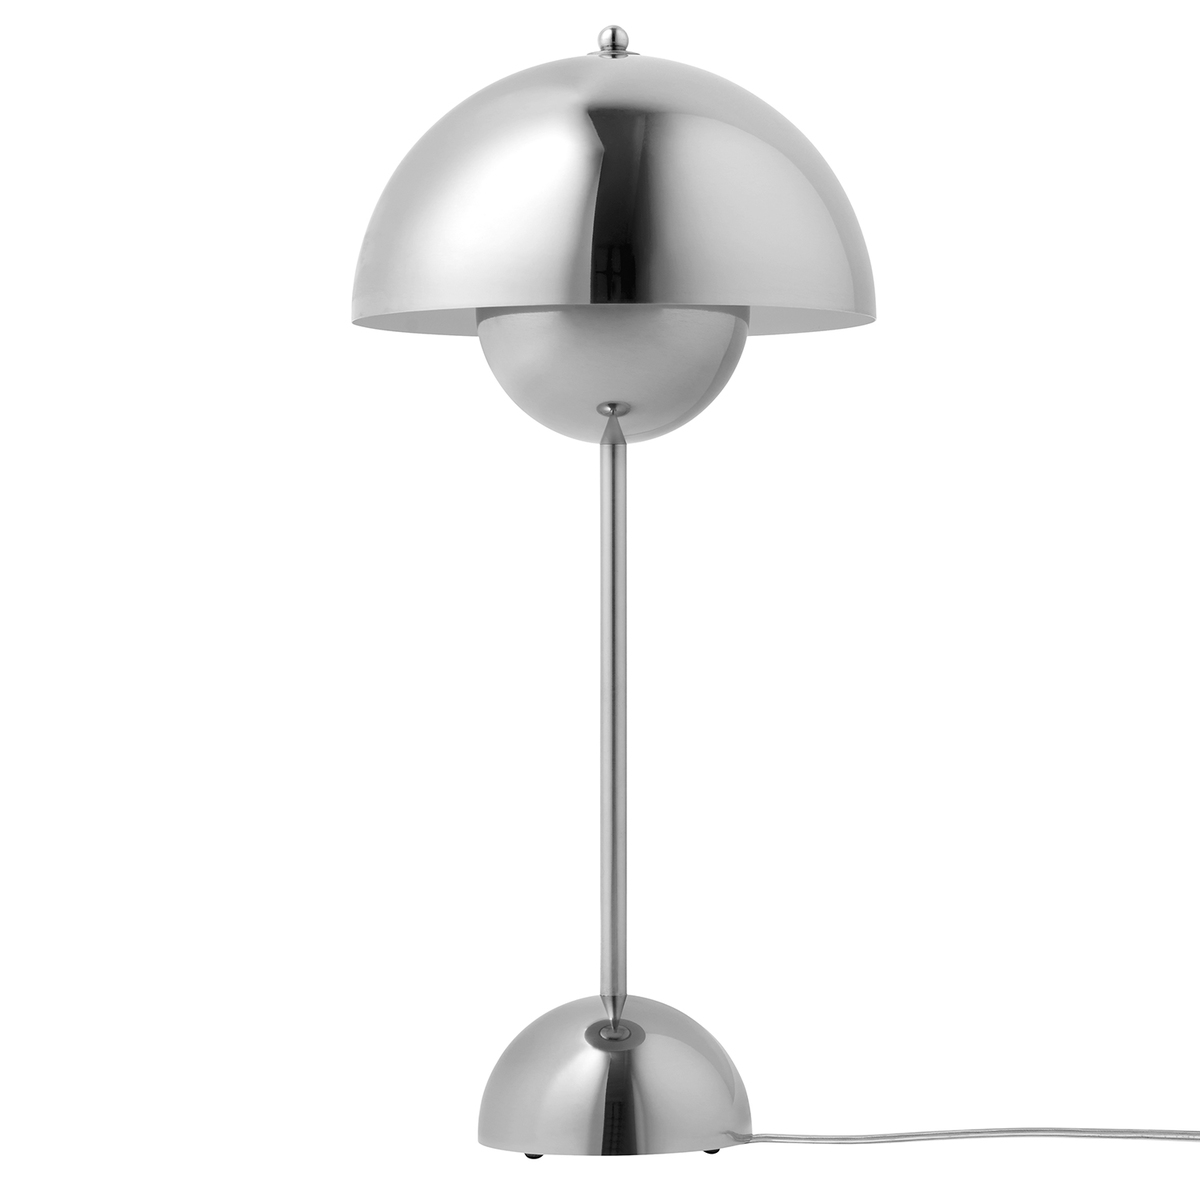 Tradition Flowerpot Vp3 Table Lamp Polished Stainless Steel Finnish Design Shop